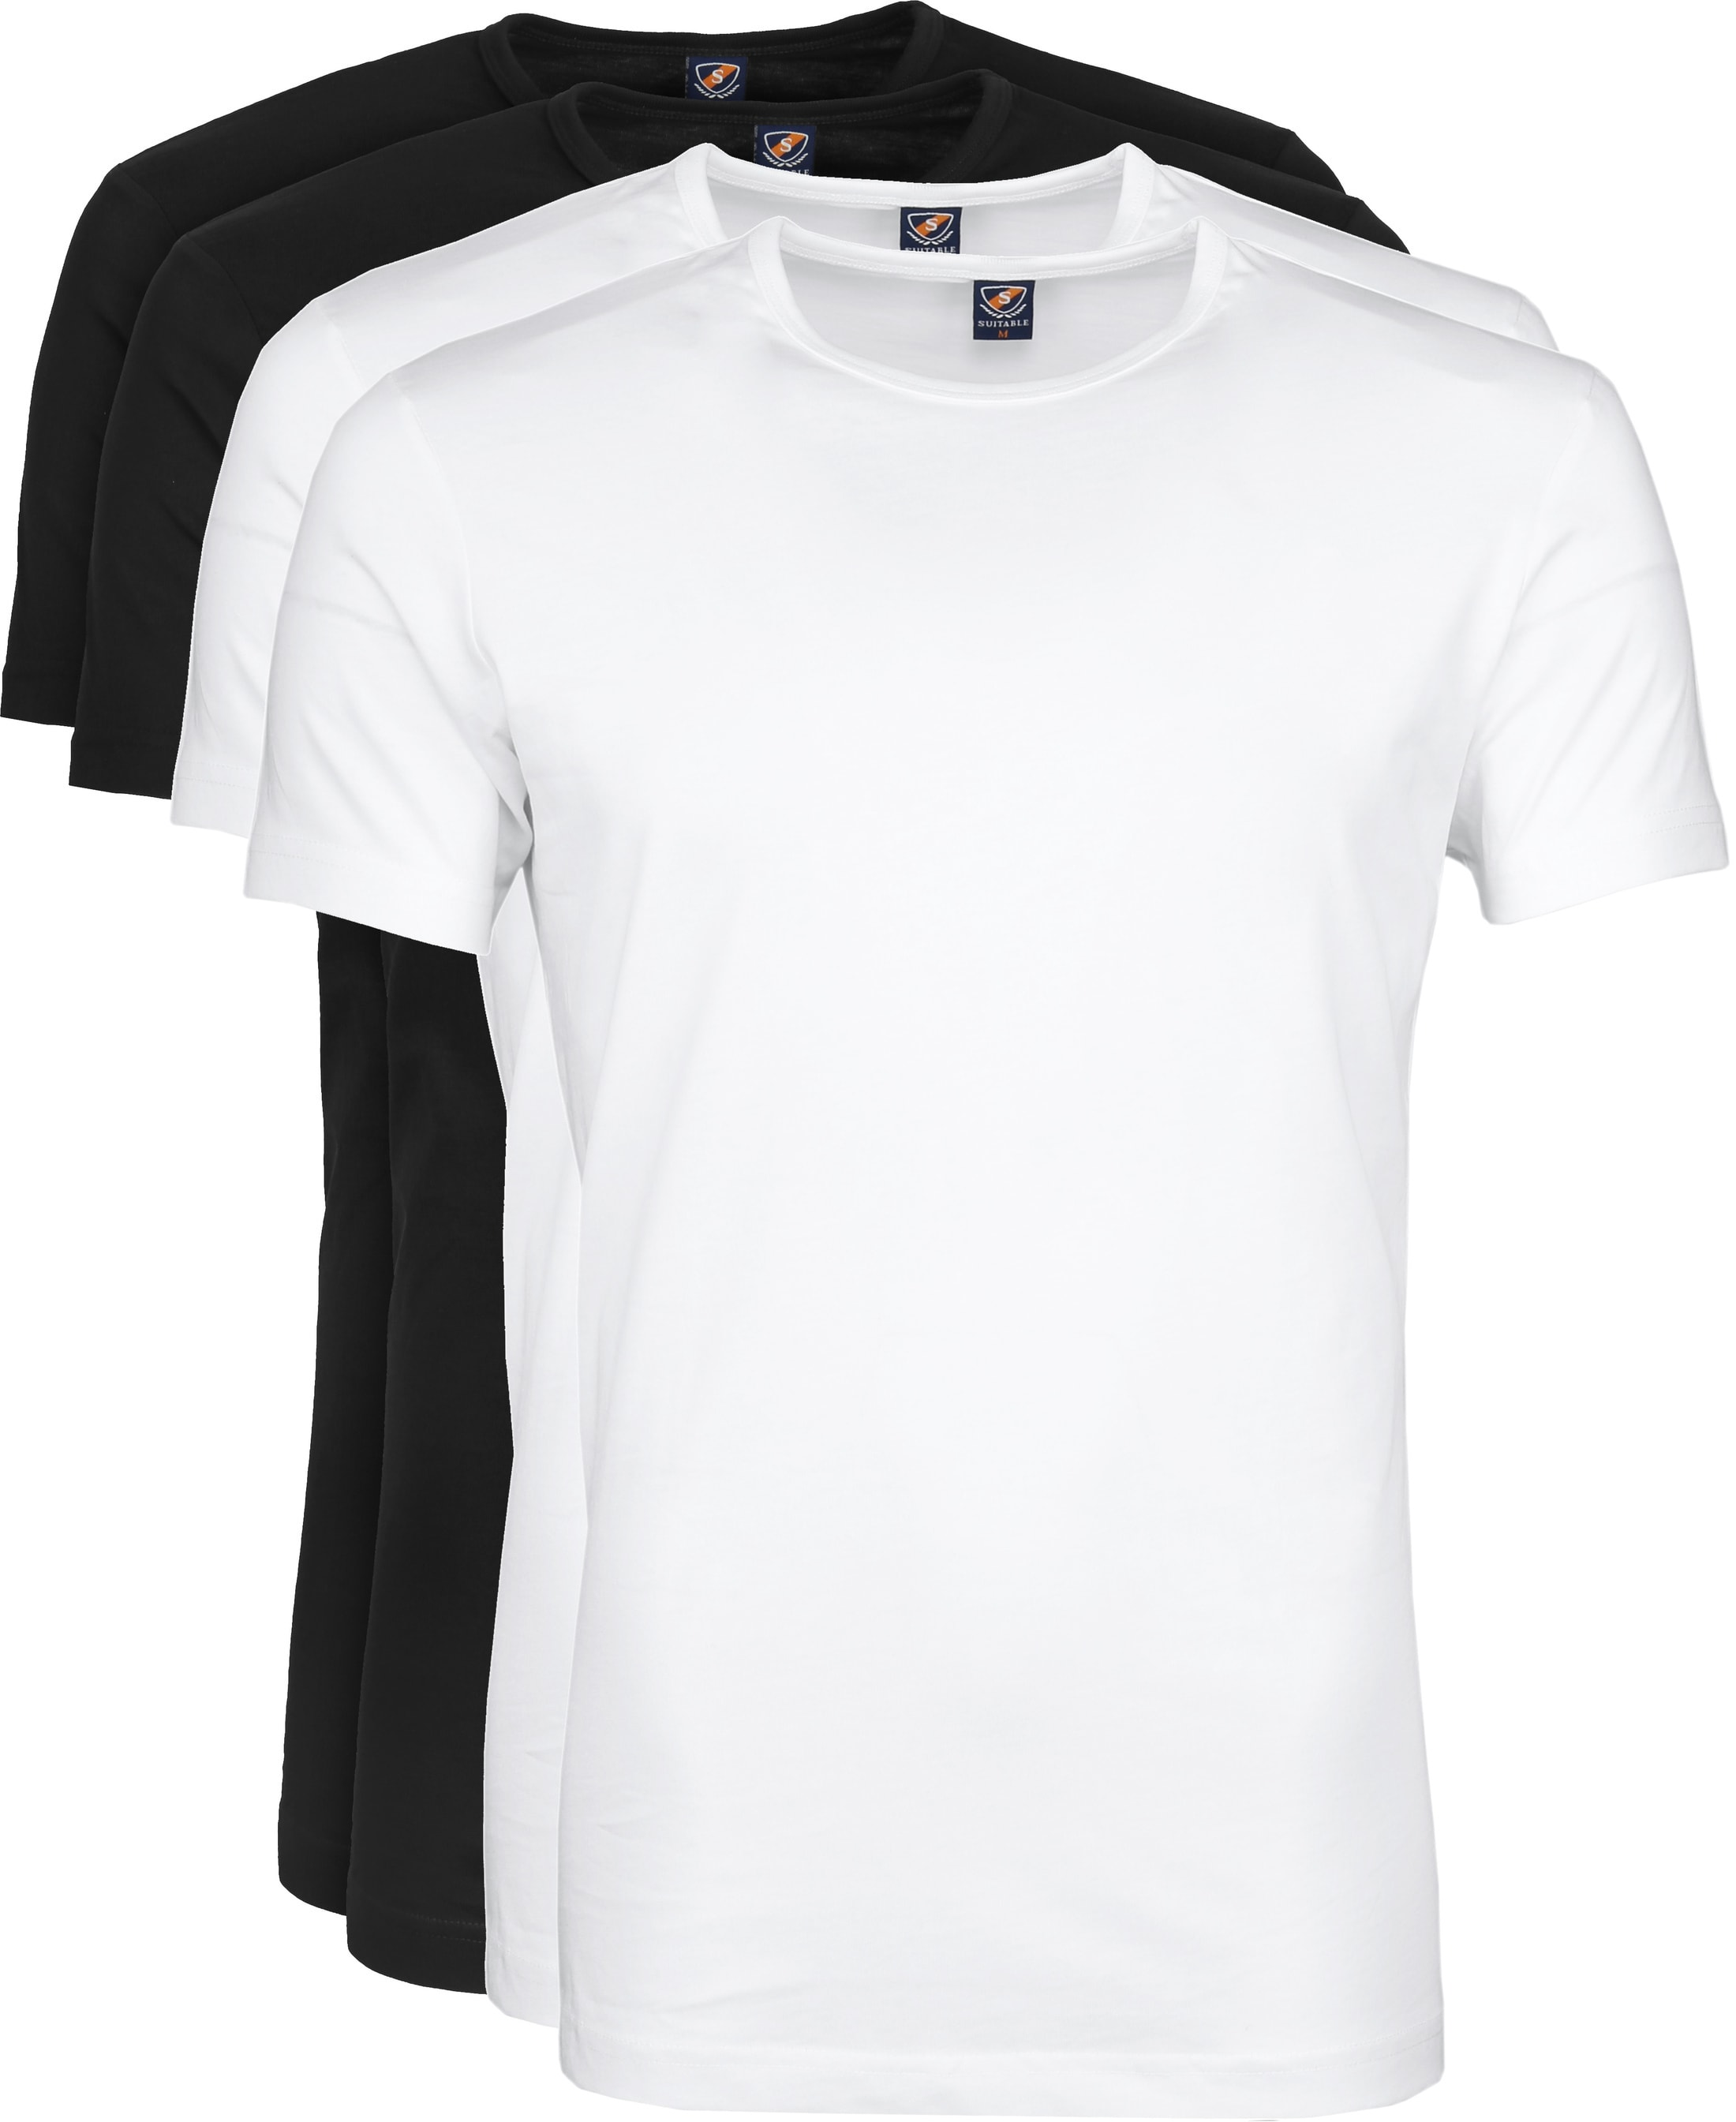 Suitable T-shirt 4-Pack O-Neck Wit Zwart foto 0